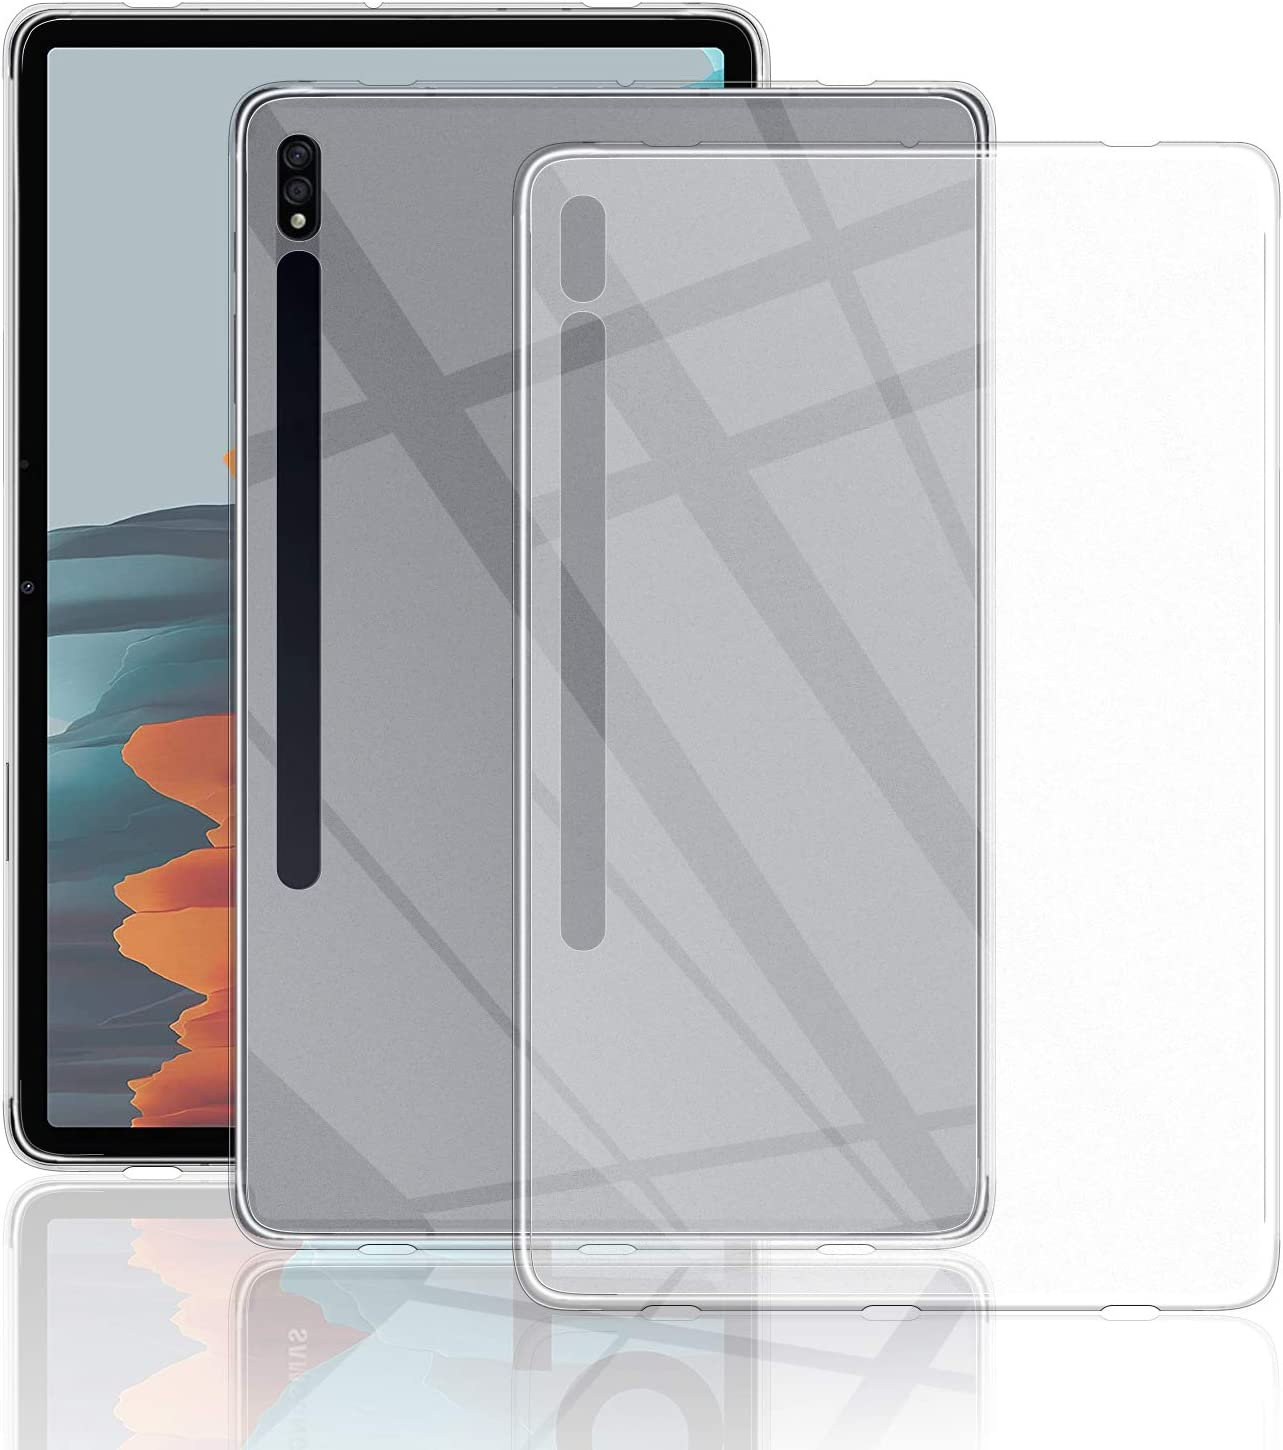 Samsung Galaxy Tab S7 Case Qulloo Tpu Case Protective Crystal Case Transparent Clear Silicone Transparent For Samsung Galaxy Tab S7 Transparent Elektronik